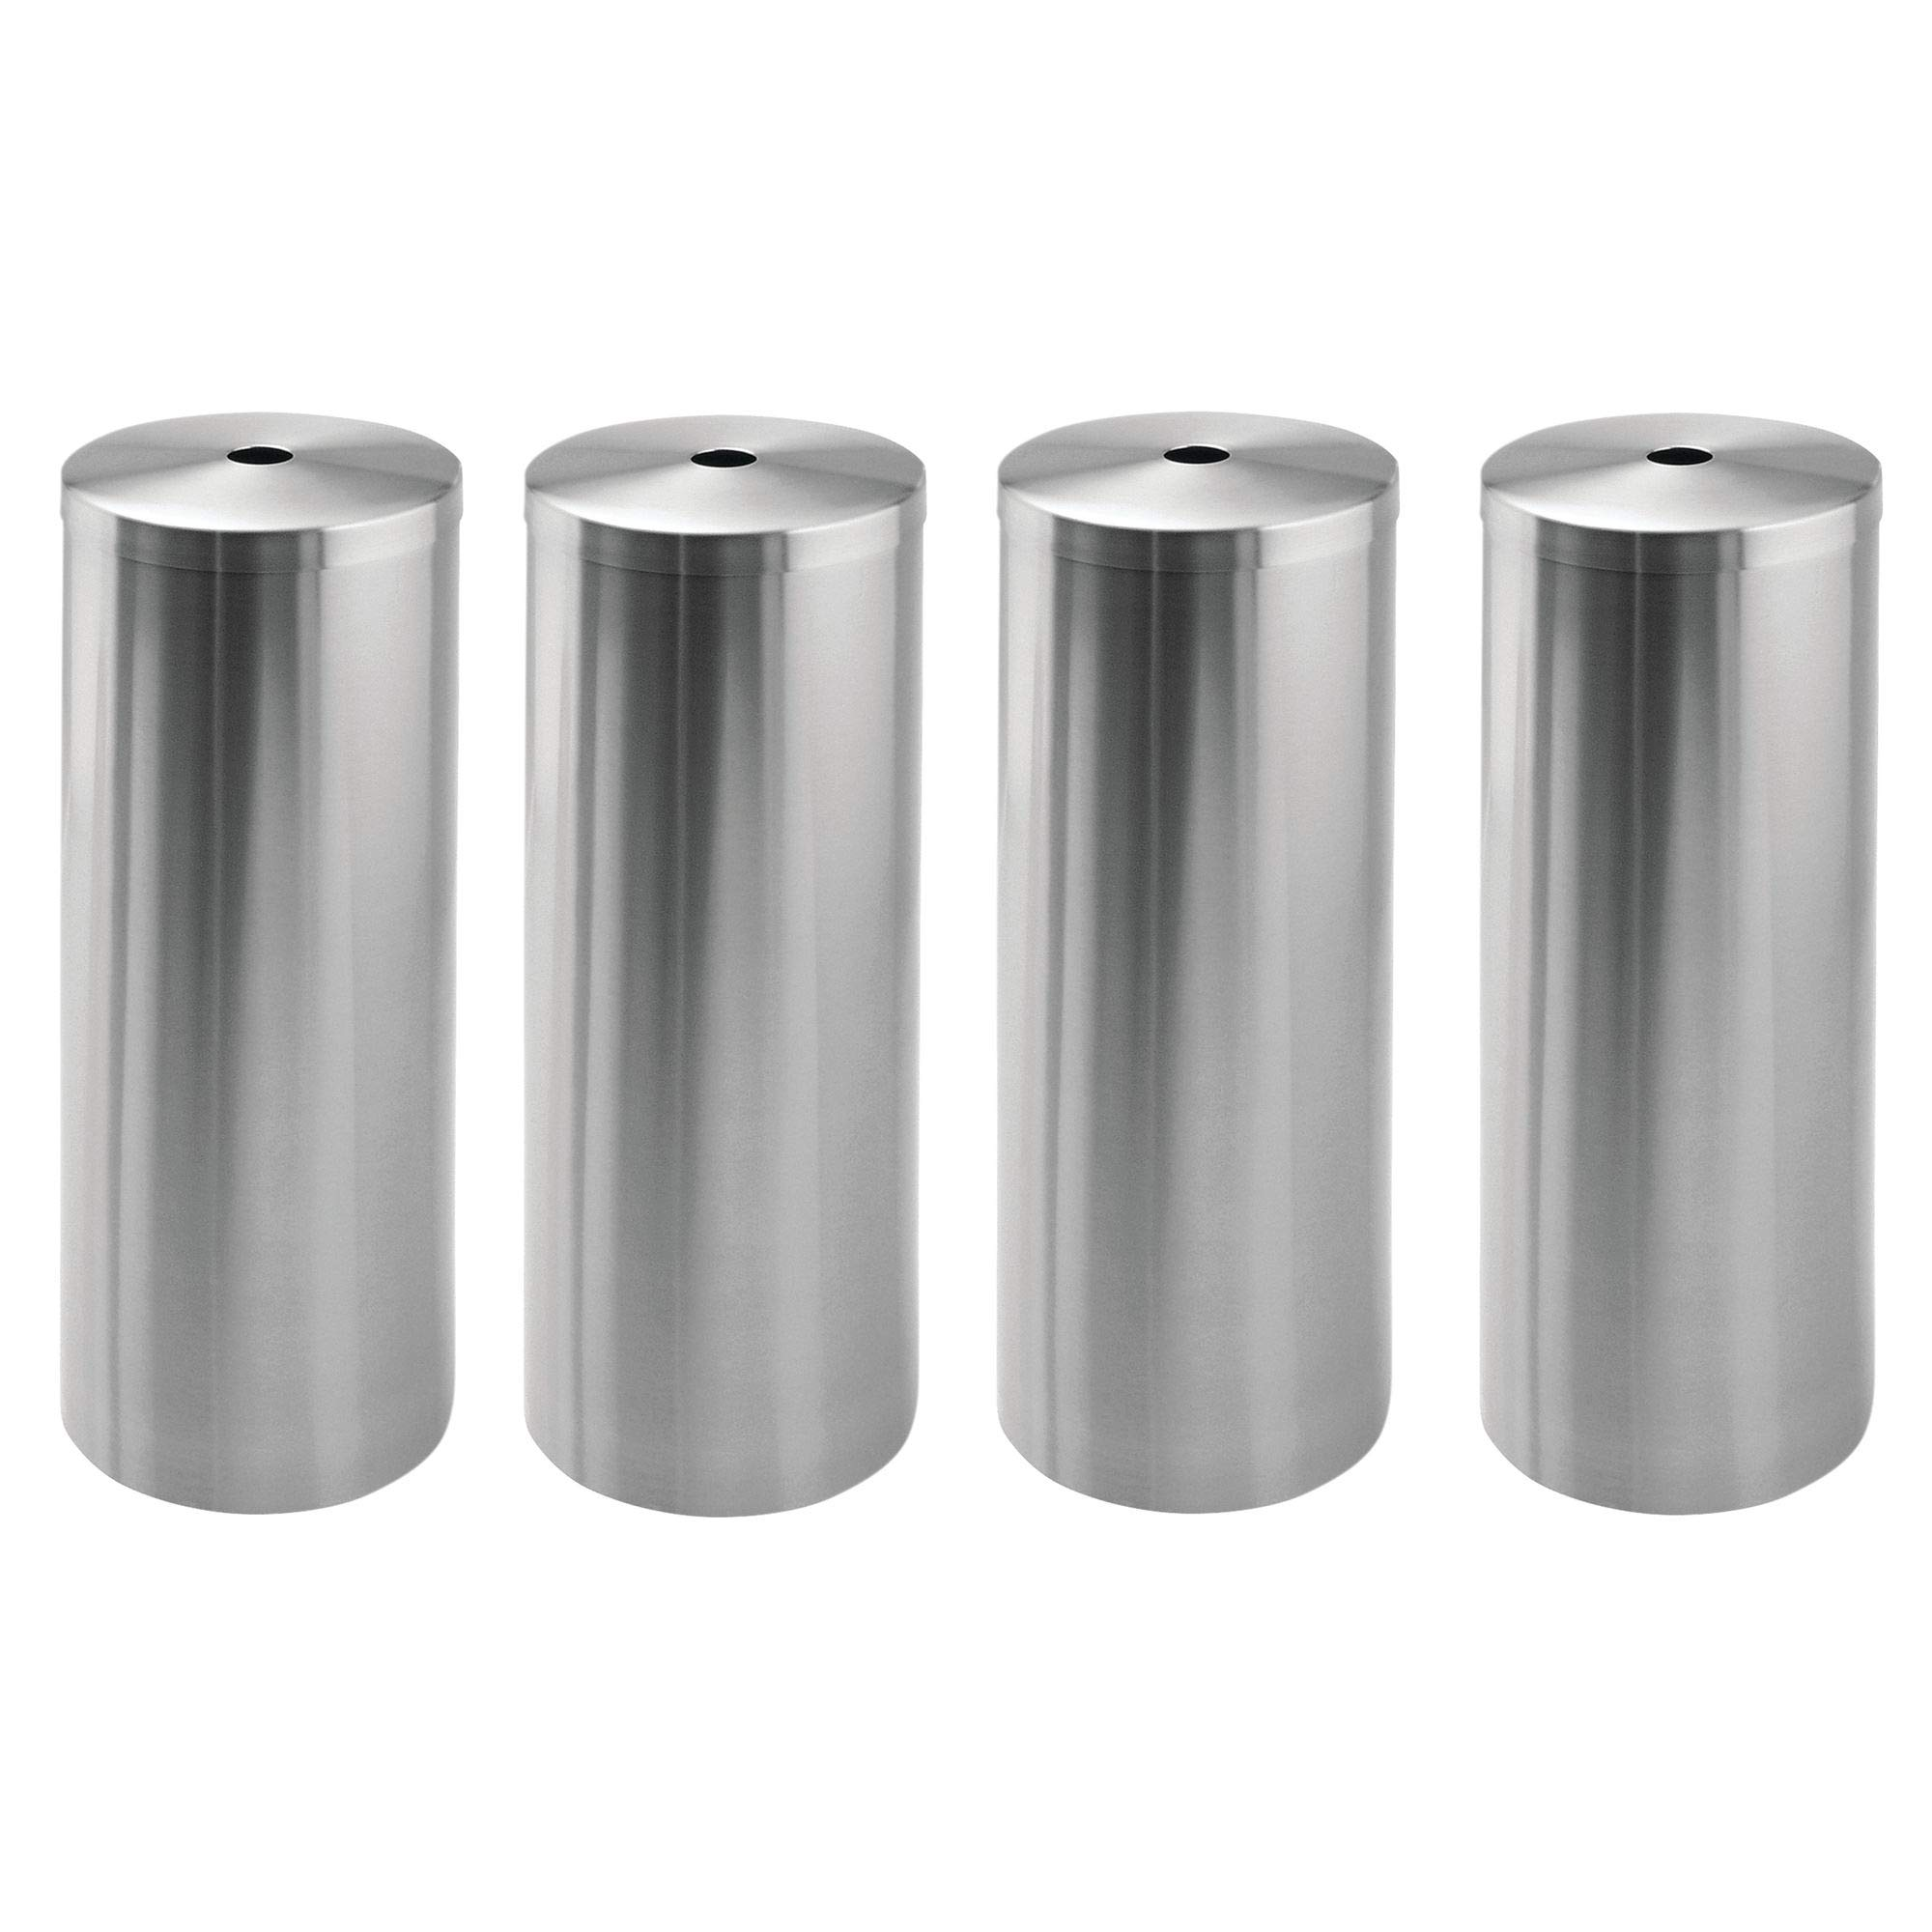 mDesign Free-Standing Toilet Paper Roll Canister for Bathroom - Pack of 4, Brushed Stainless Steel